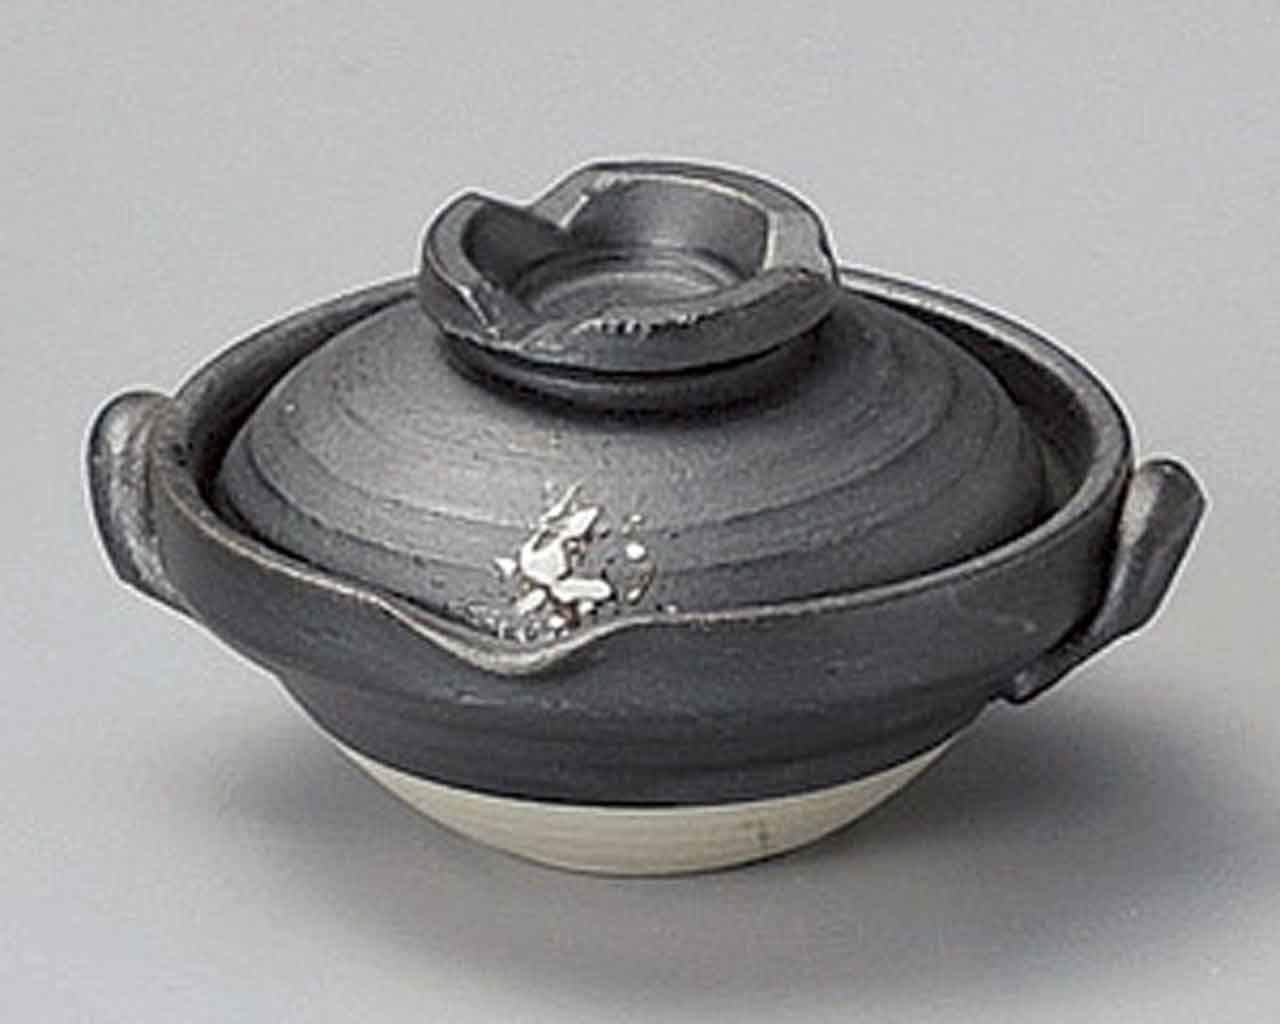 Sabi white Blow 3.4inch Set of 2 Small Bowls with covers Black Ceramic Made in Japan